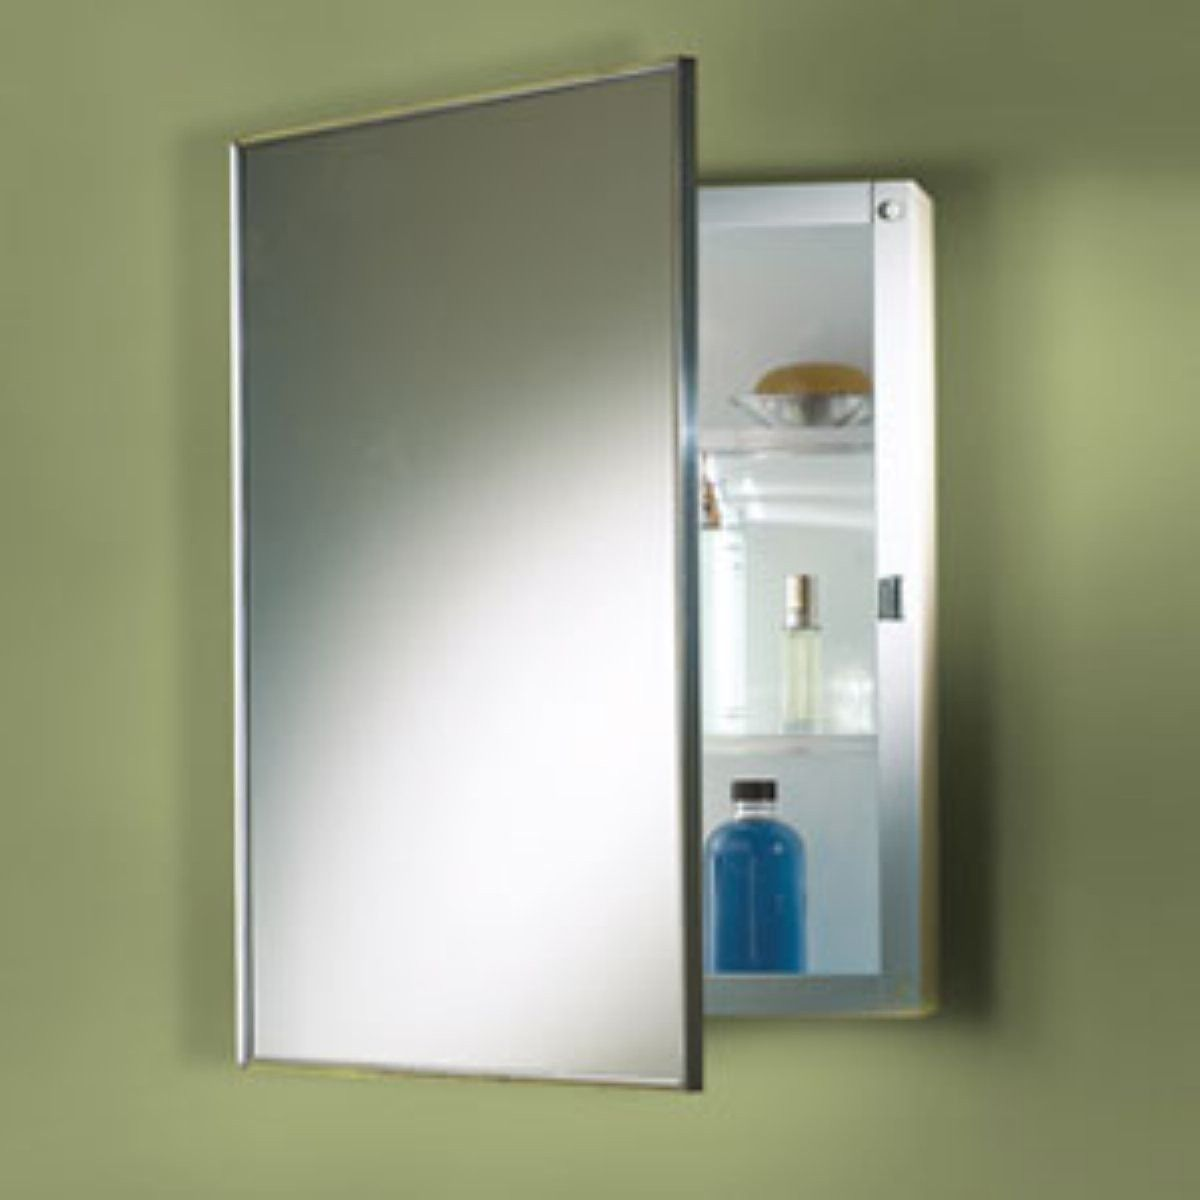 55 Recessed Bathroom Wall Cabinets Best Paint For Interior Walls Check More At Http